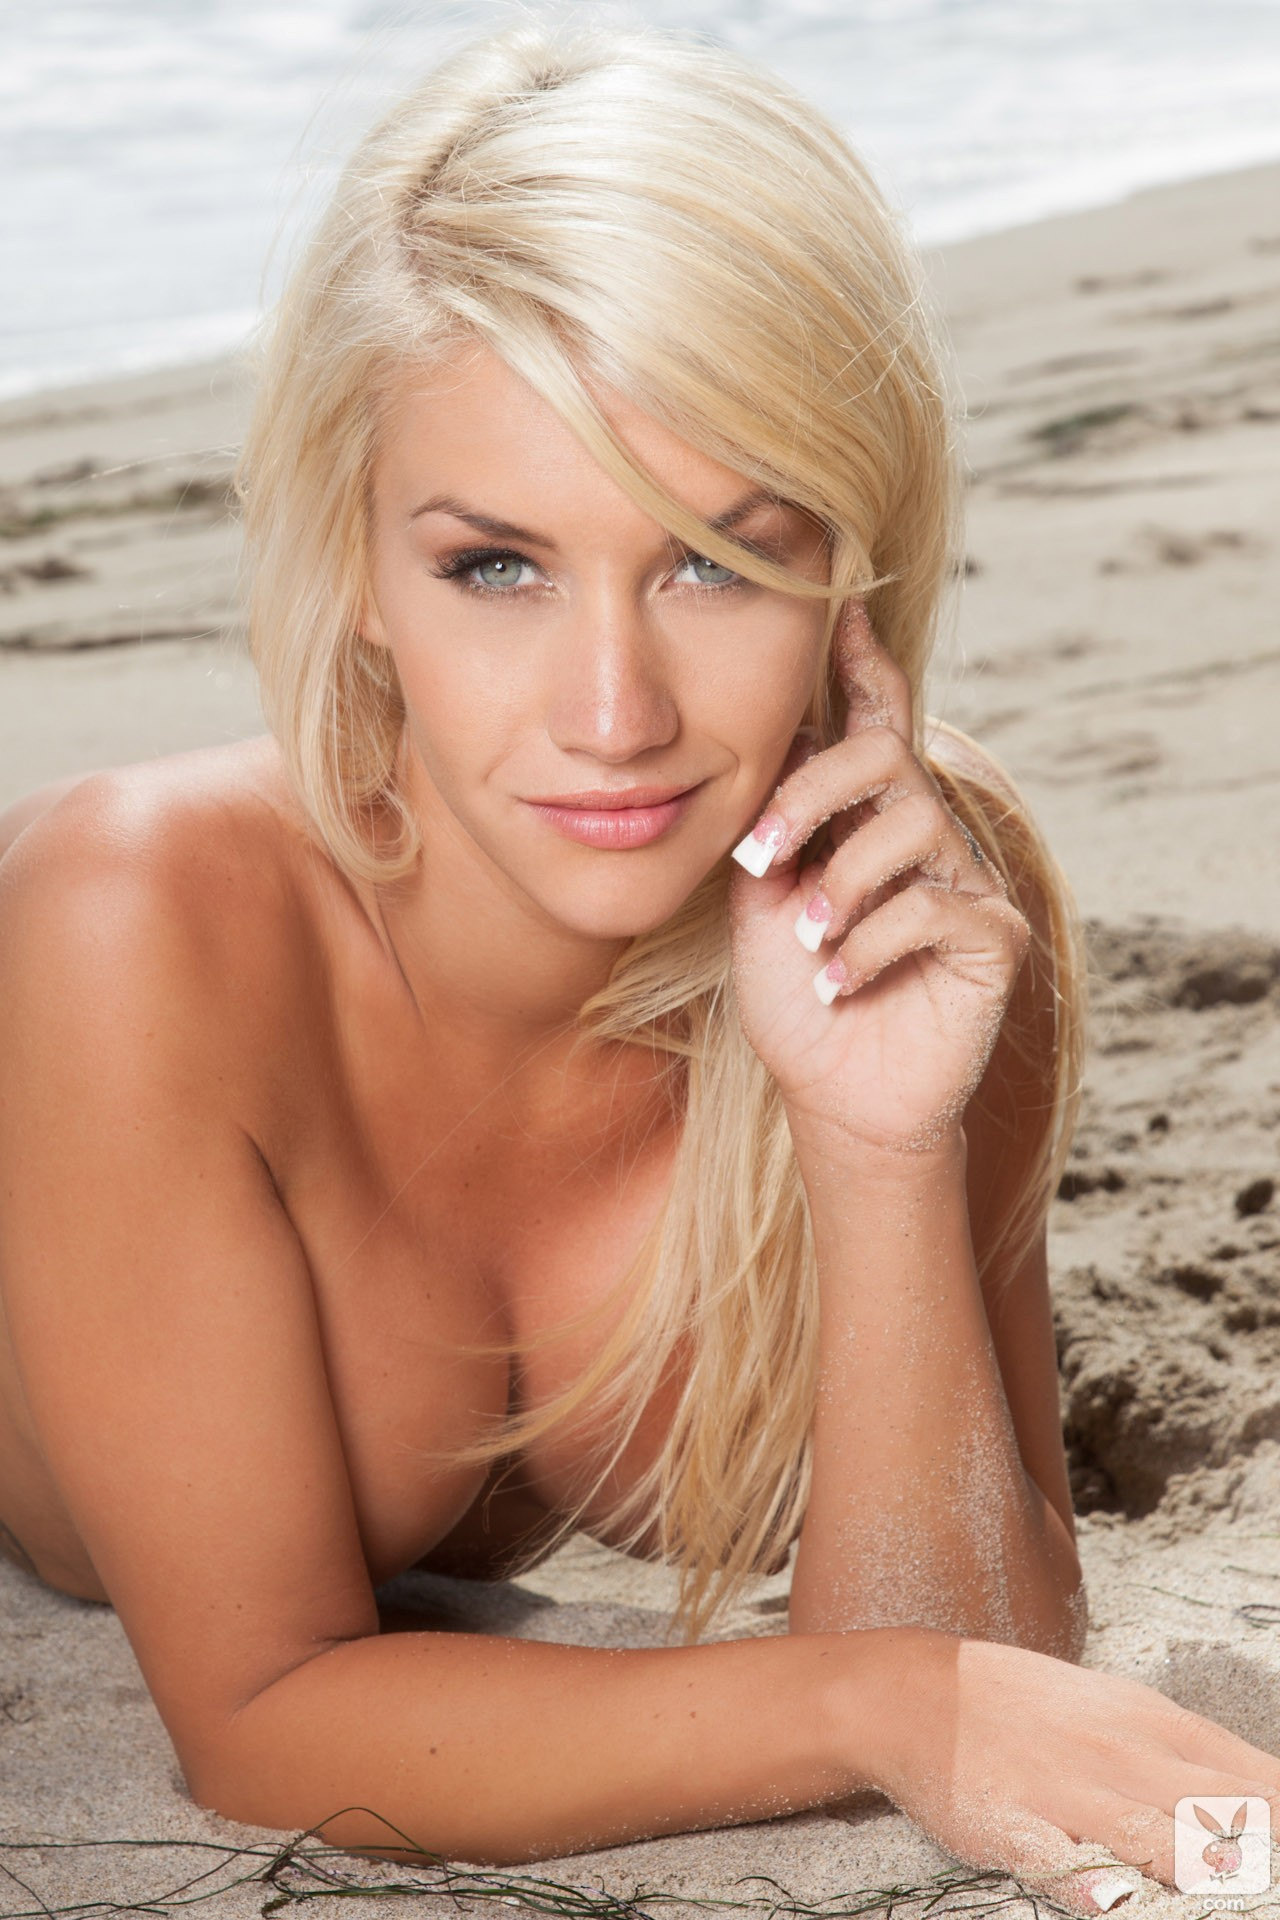 Taylor Seinturier Android Wallpapers